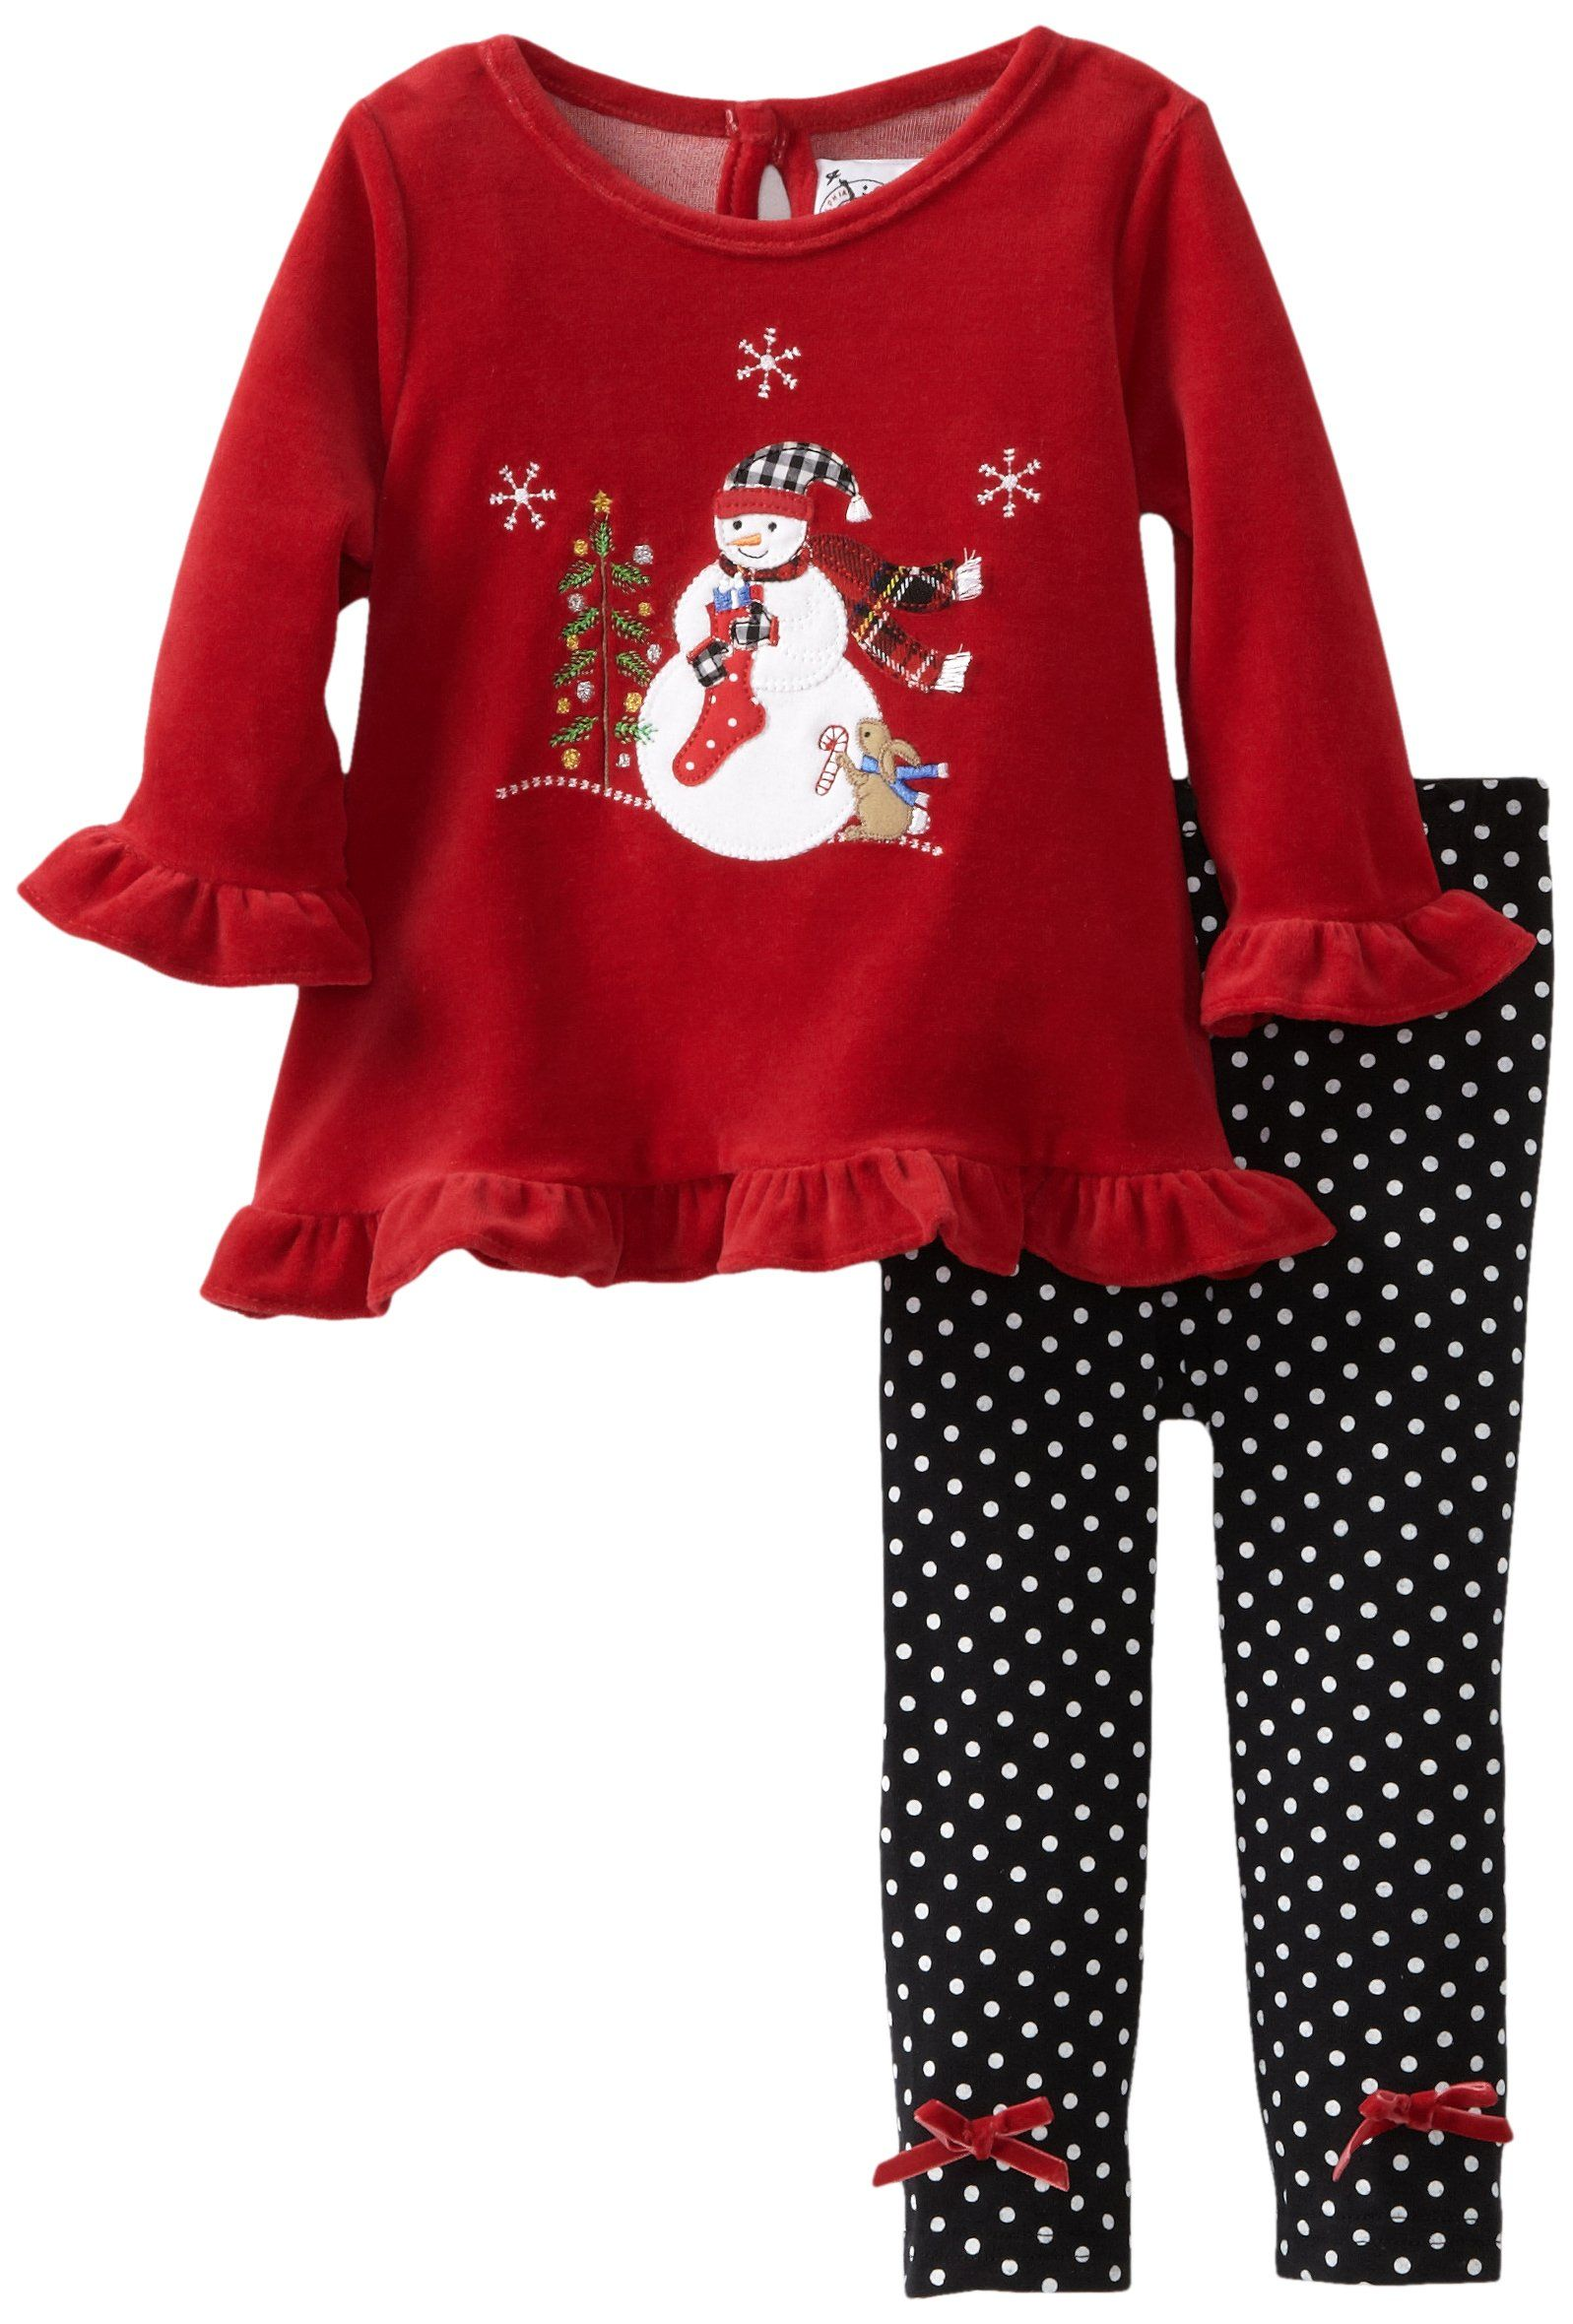 SOPO Baby Boy Christmas 2 Pc Outfits 5t 1-5Y Red Hoodie Jacket /& Pants